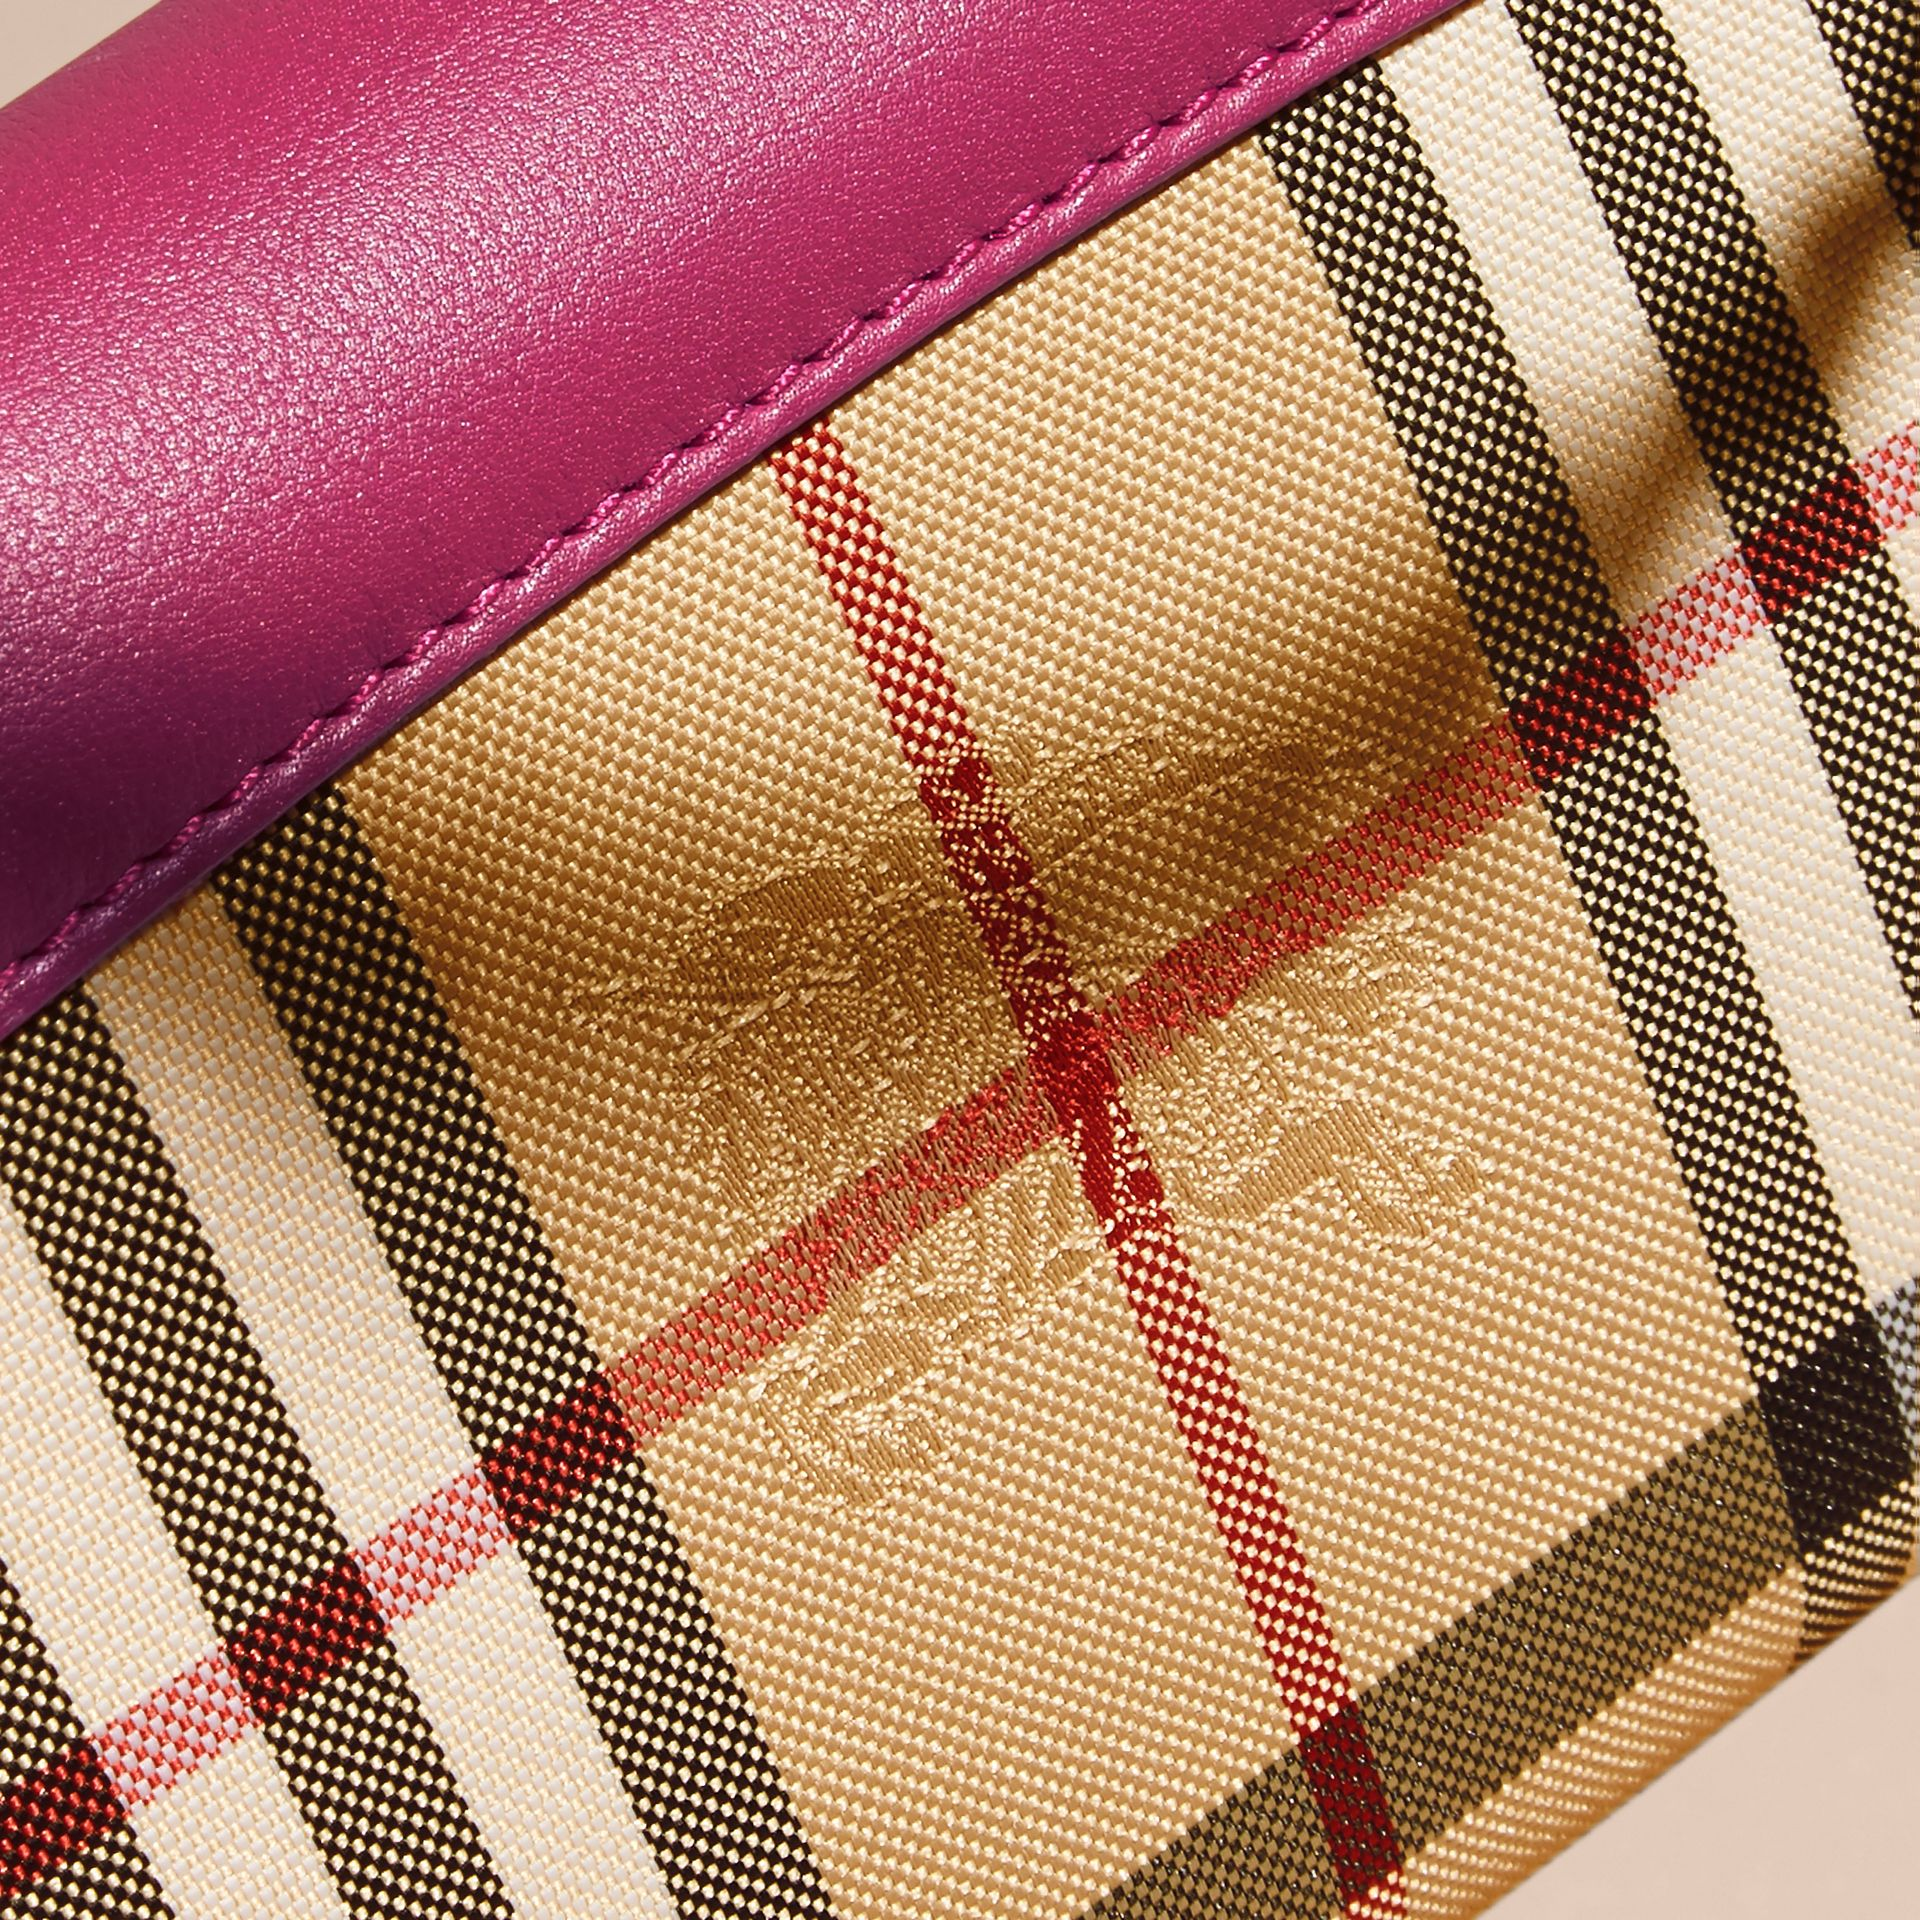 Brilliant fuchsia Horseferry Check and Leather Wallet with Chain Brilliant Fuchsia - gallery image 2